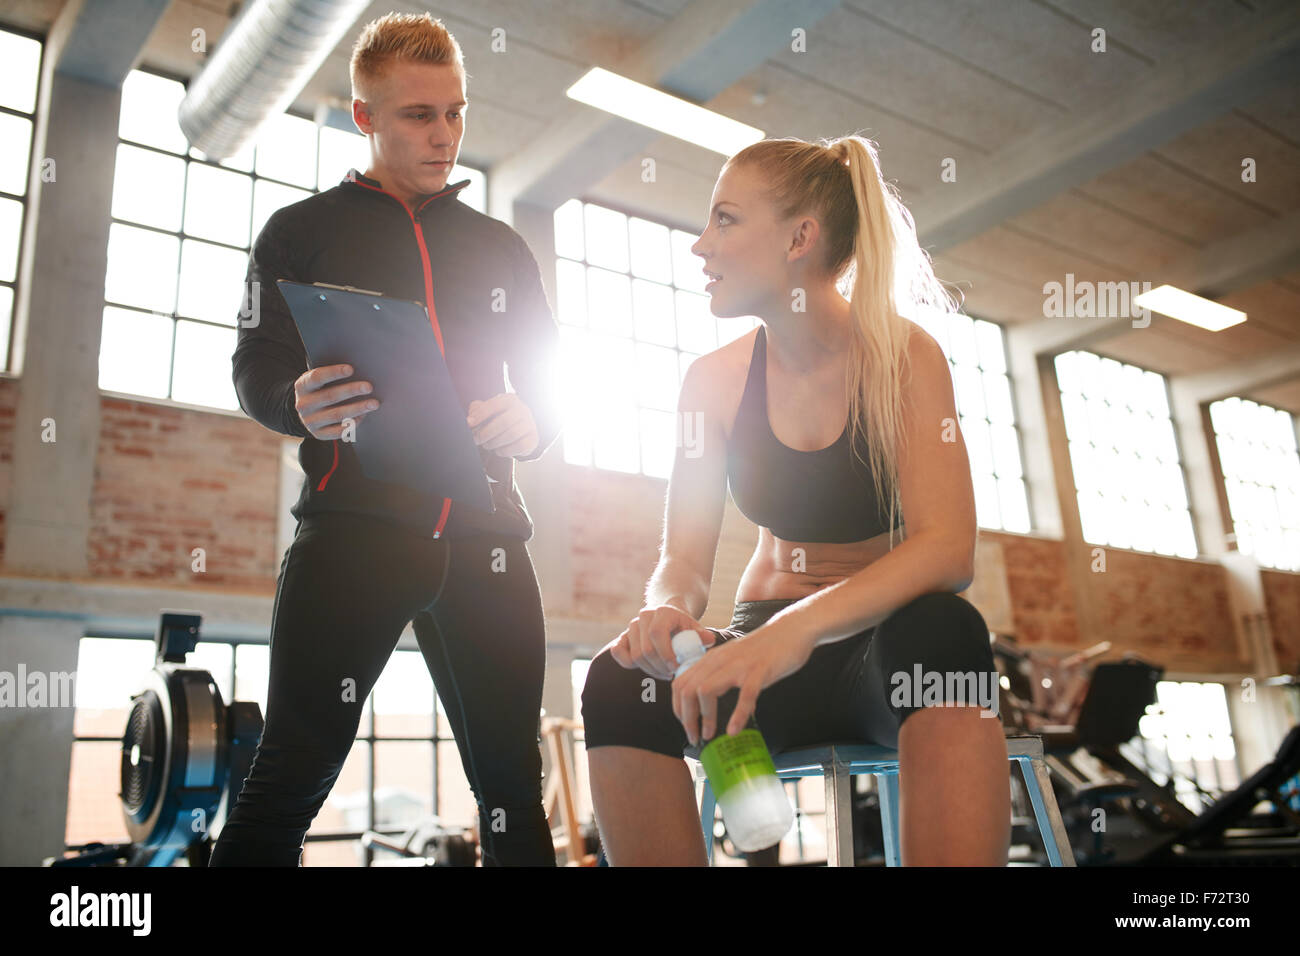 Young woman sitting on a stool and discussing exercise plan with personal trainer. Trainer making an fitness plan - Stock Image